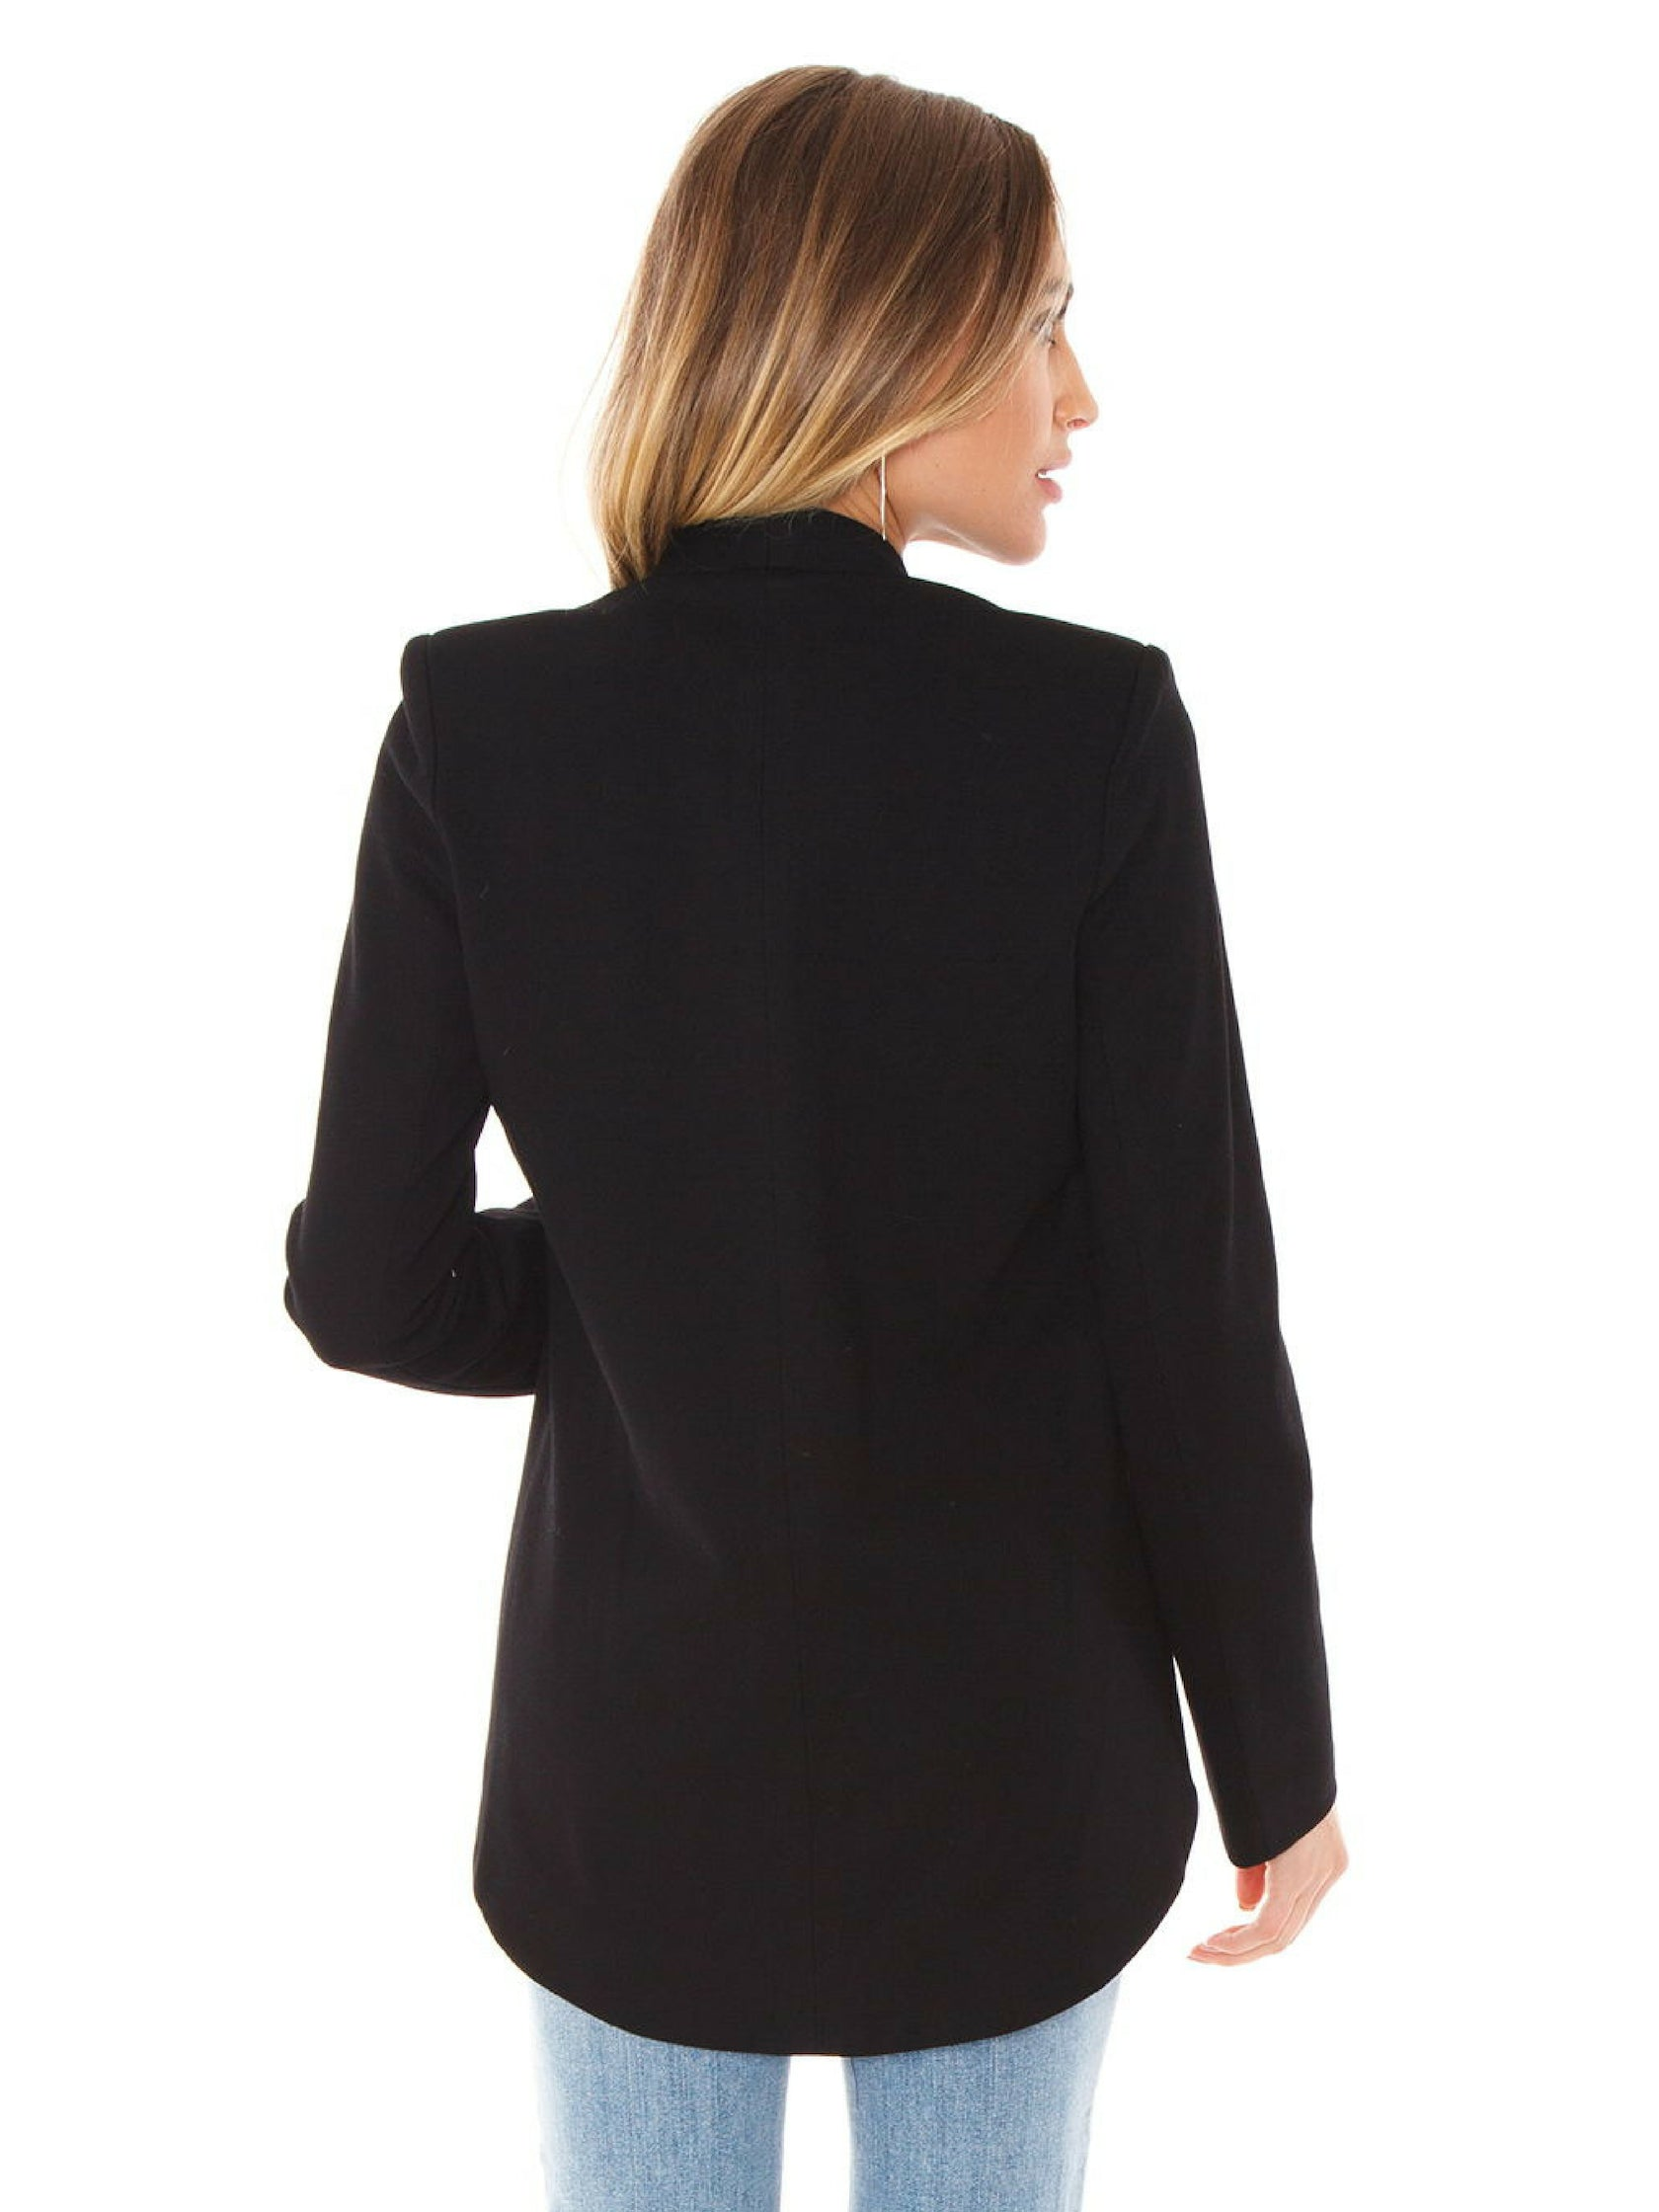 Women outfit in a blazer rental from BLAQUE LABEL called Blazer